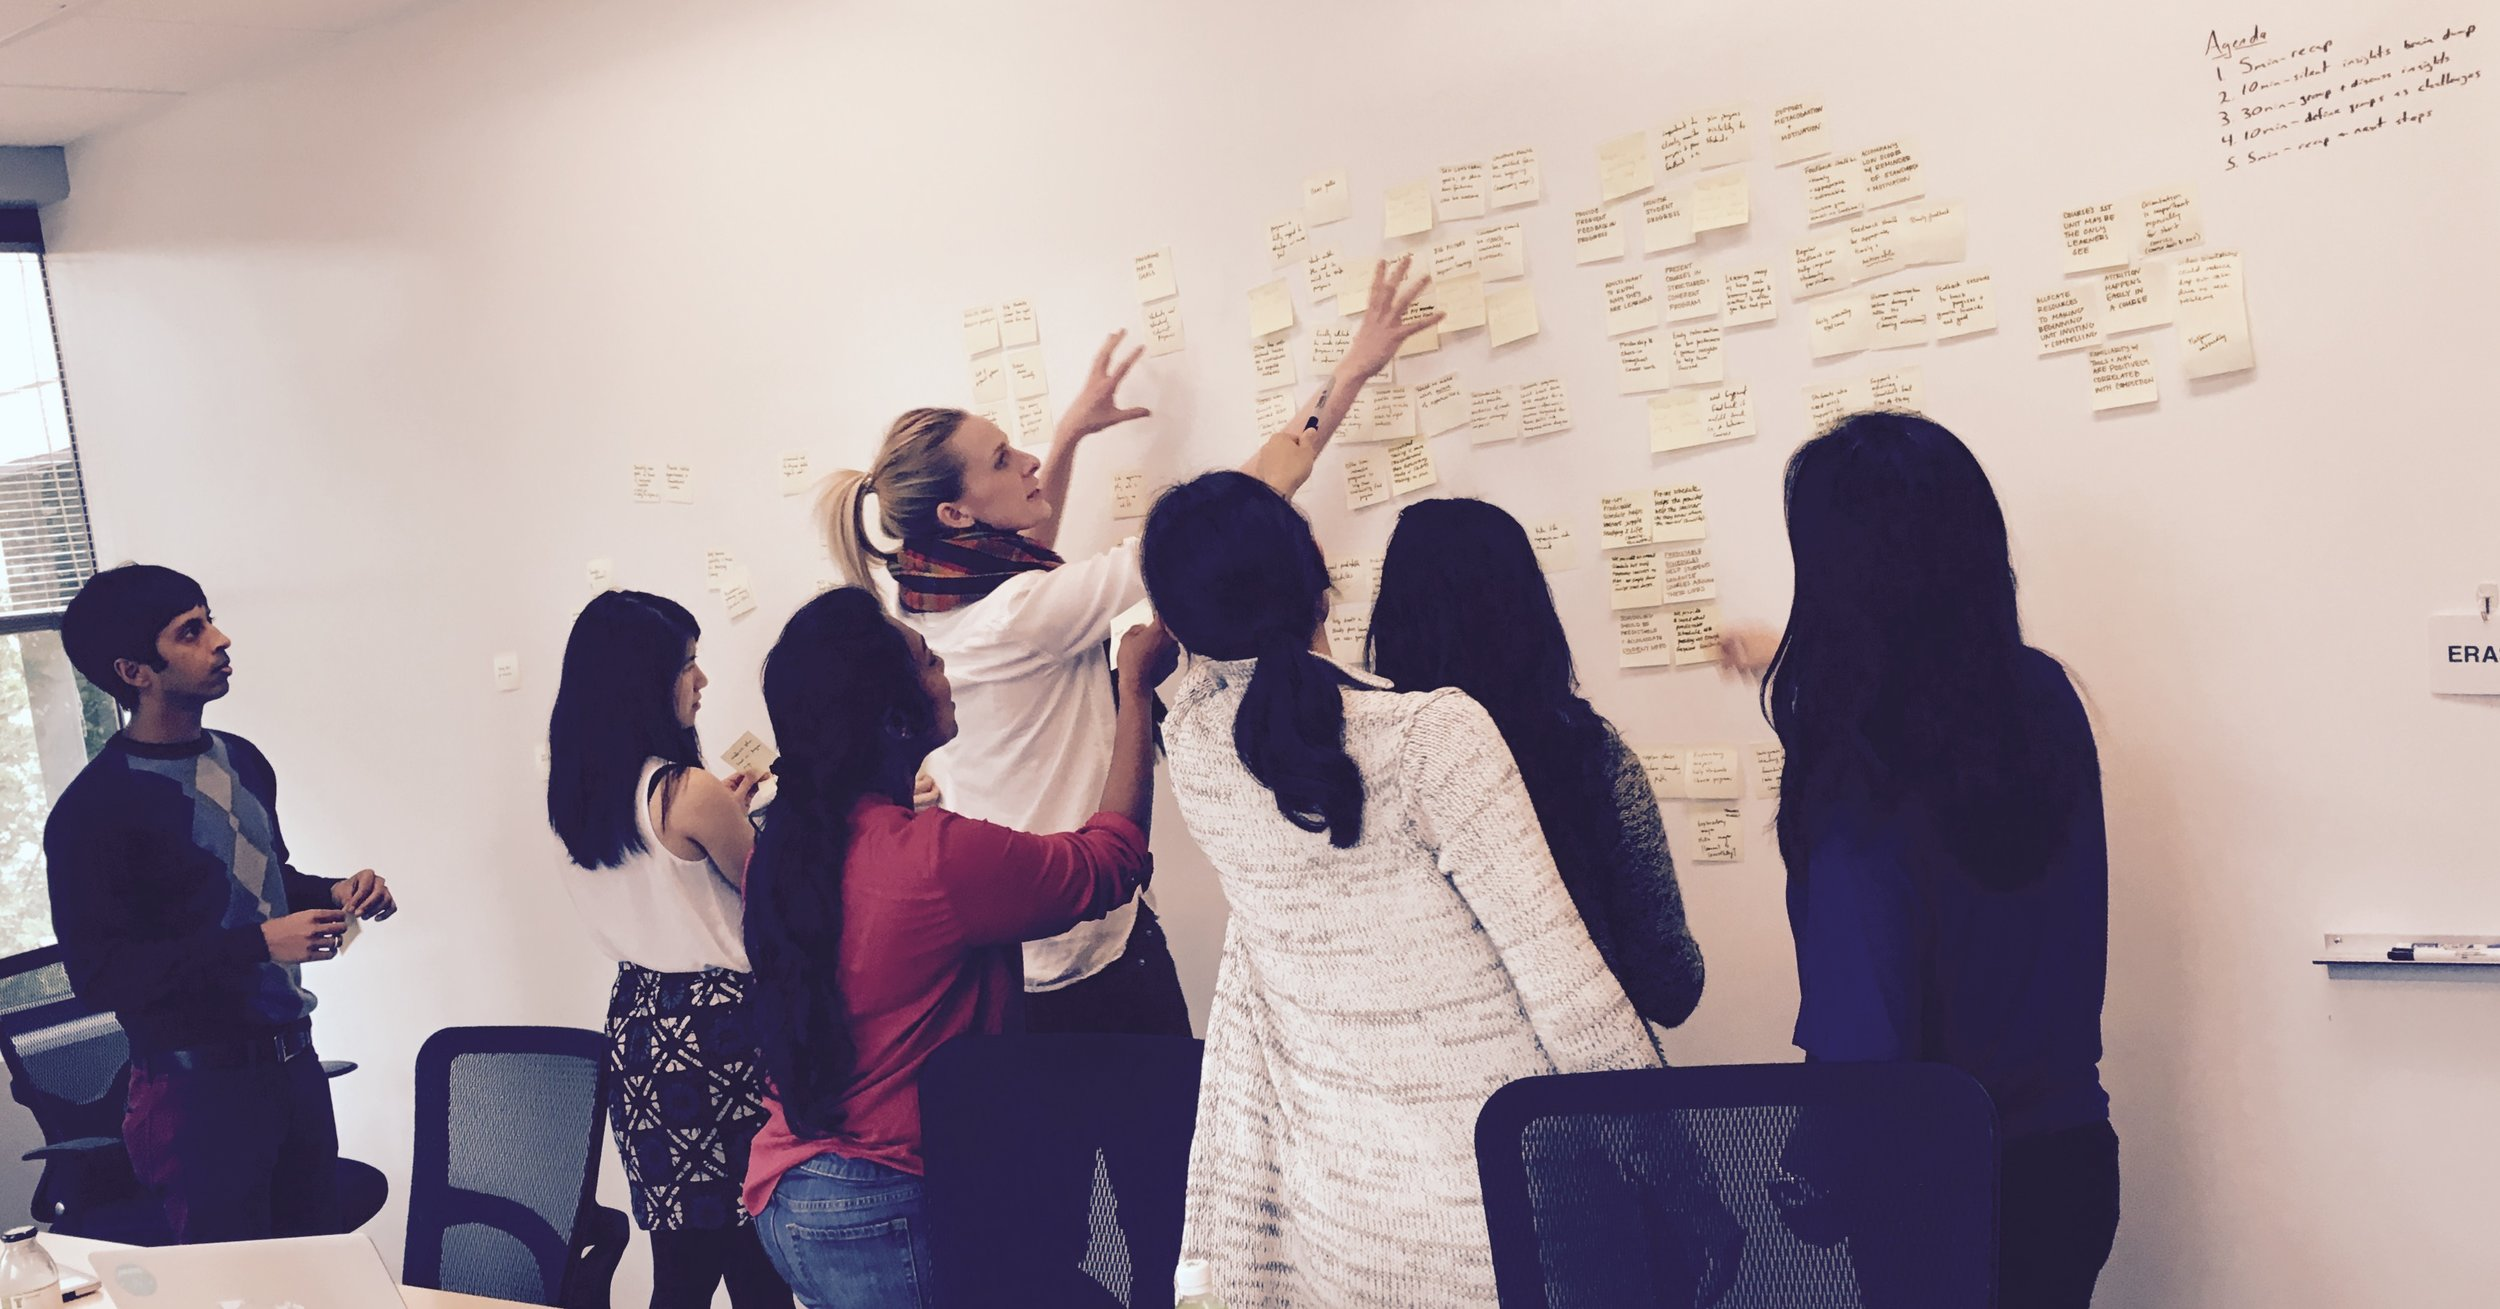 Uncovering research insights with the engineering, design, and user research teams.